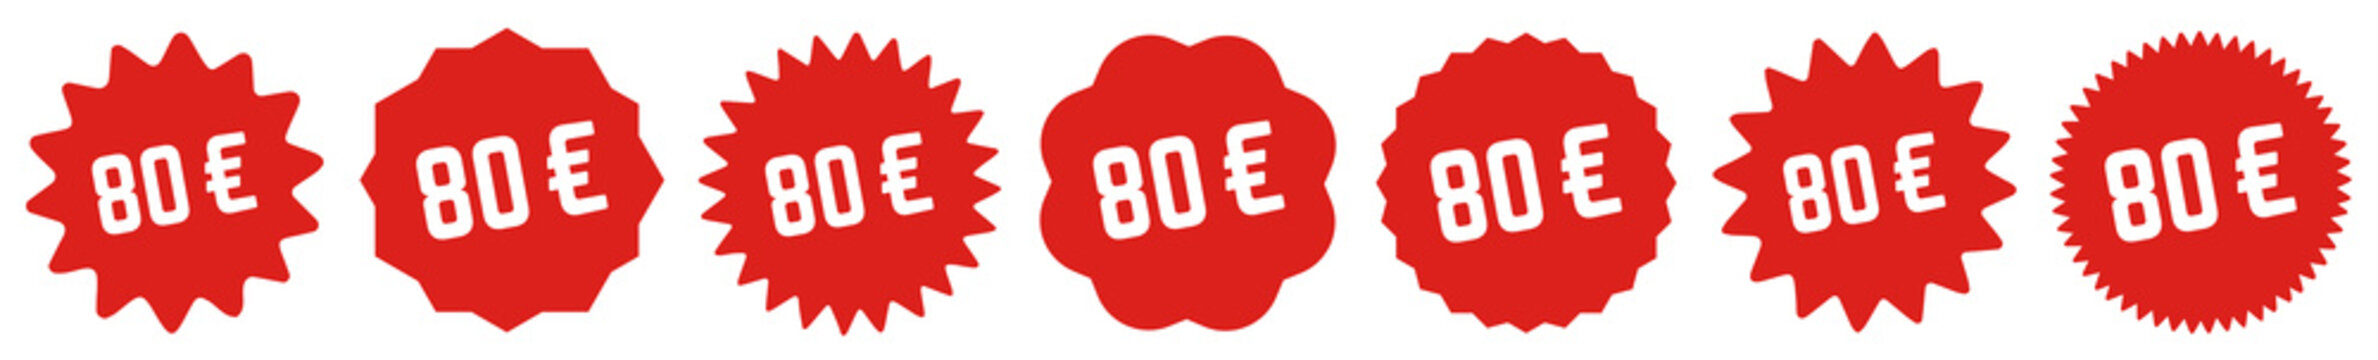 80 Price Tag Red | 80 Euro | Special Offer Icon | Sale Sticker | Deal Label | Variations